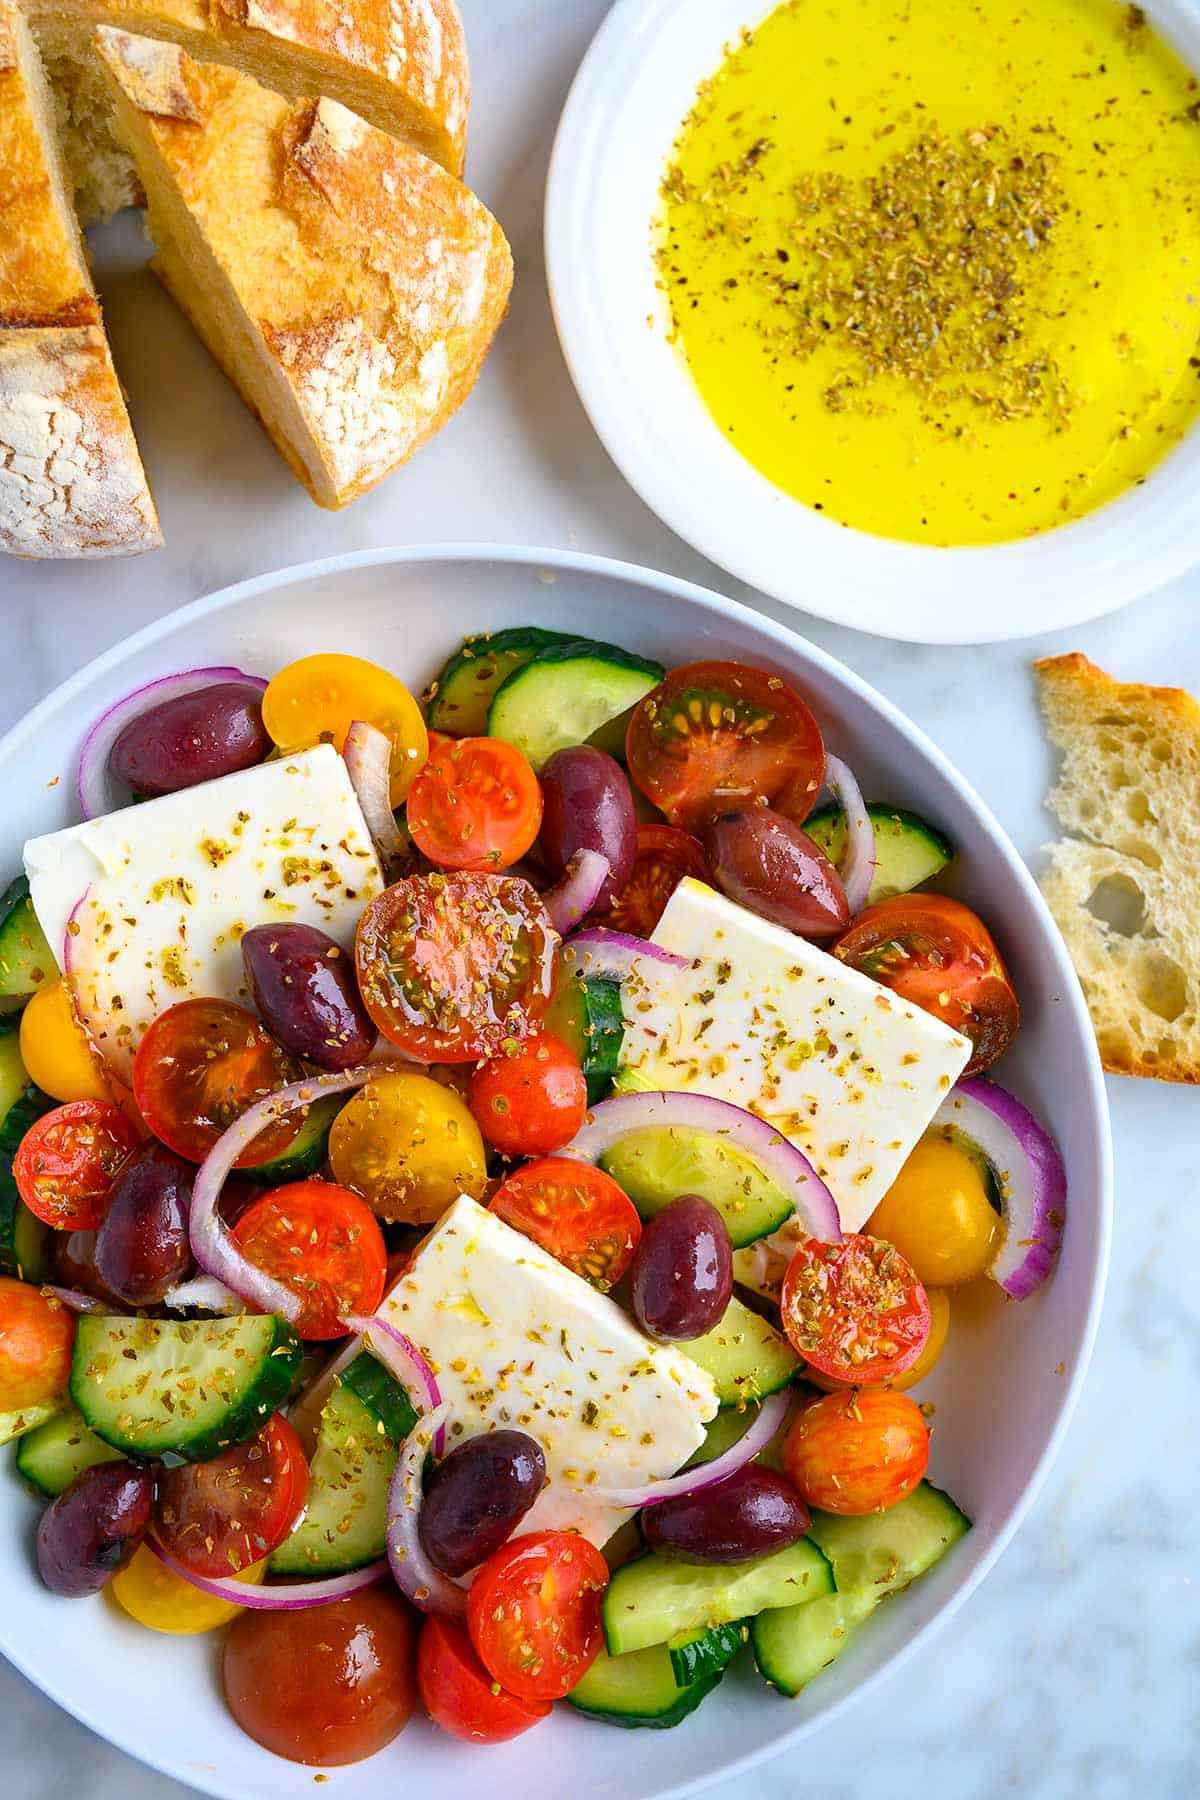 Bowl full of a Greek salad with bread and dipping oil on the side.